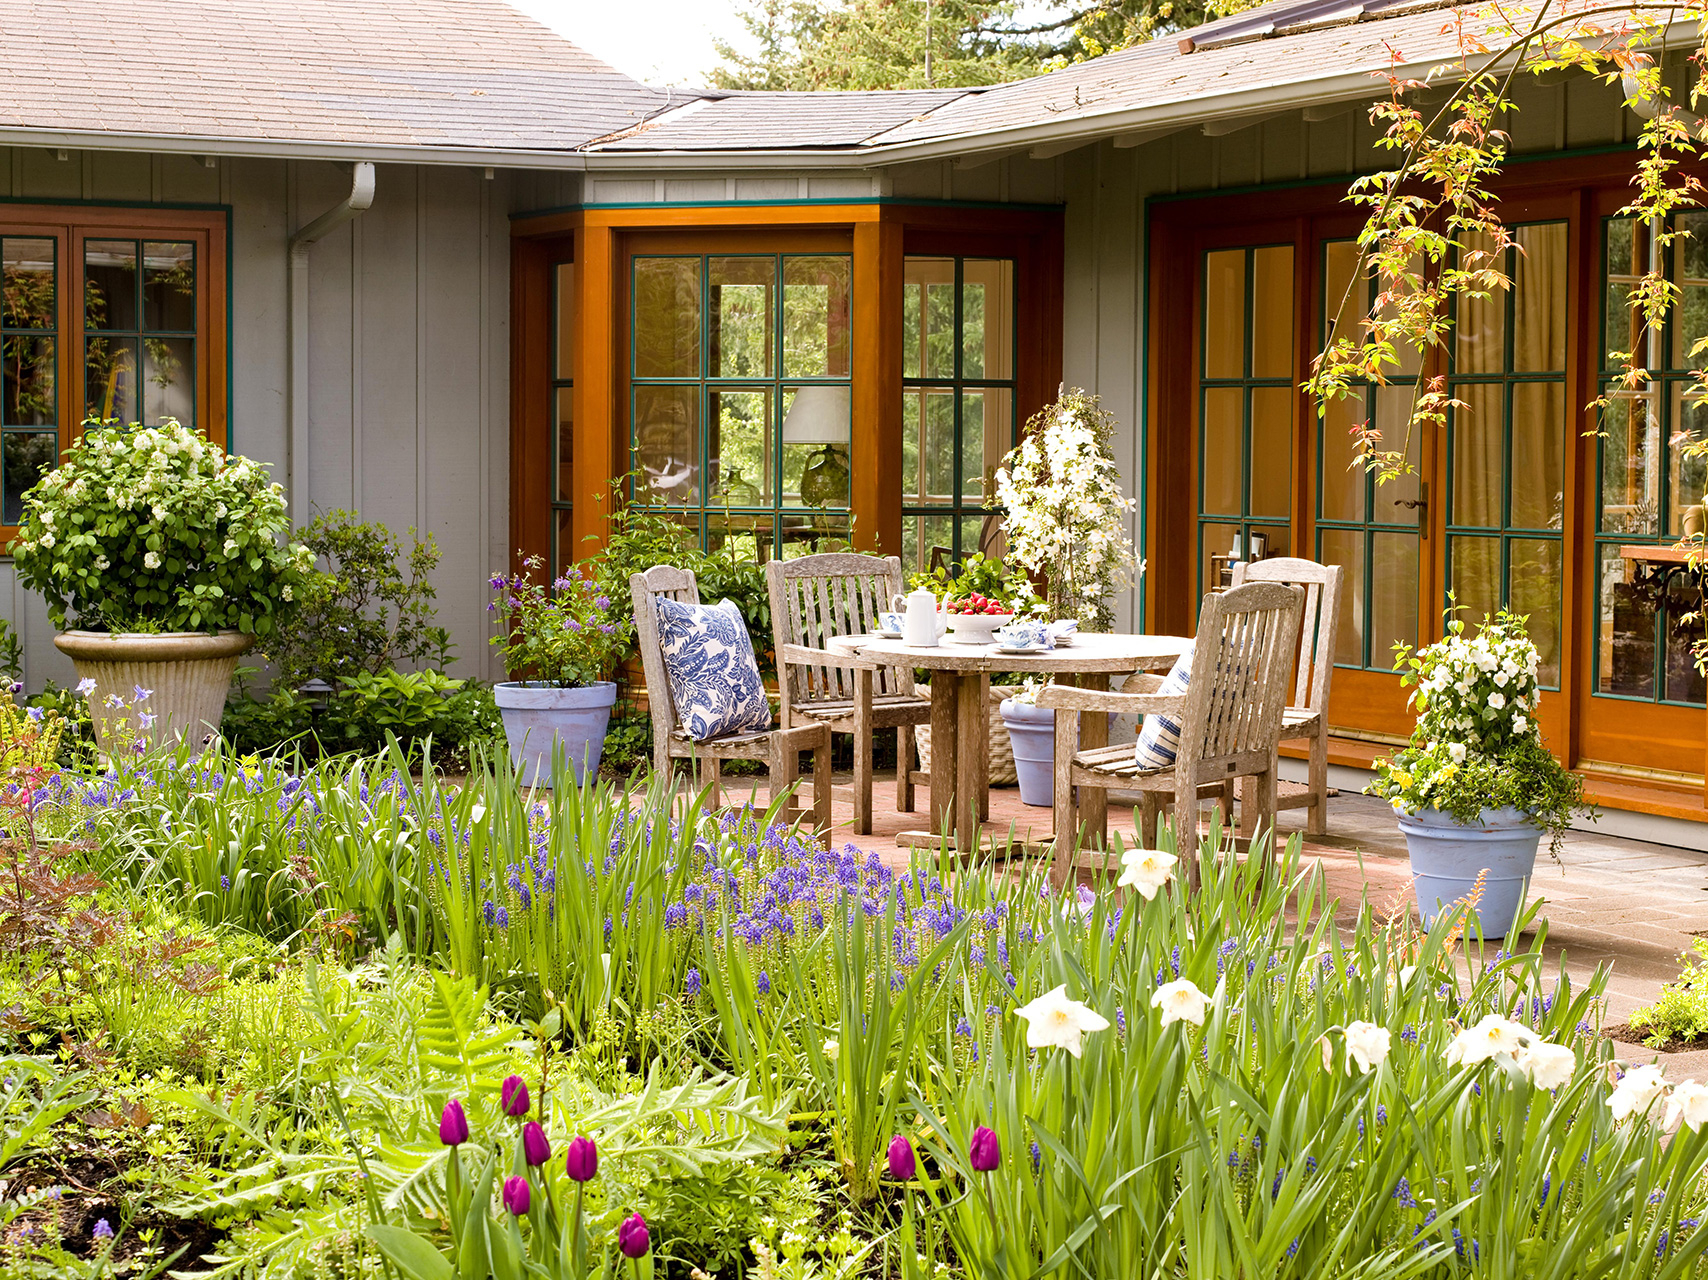 7 Landscaping Ideas For Beginners Better Homes Gardens within 15 Some of the Coolest Tricks of How to Improve How To Landscape Backyard